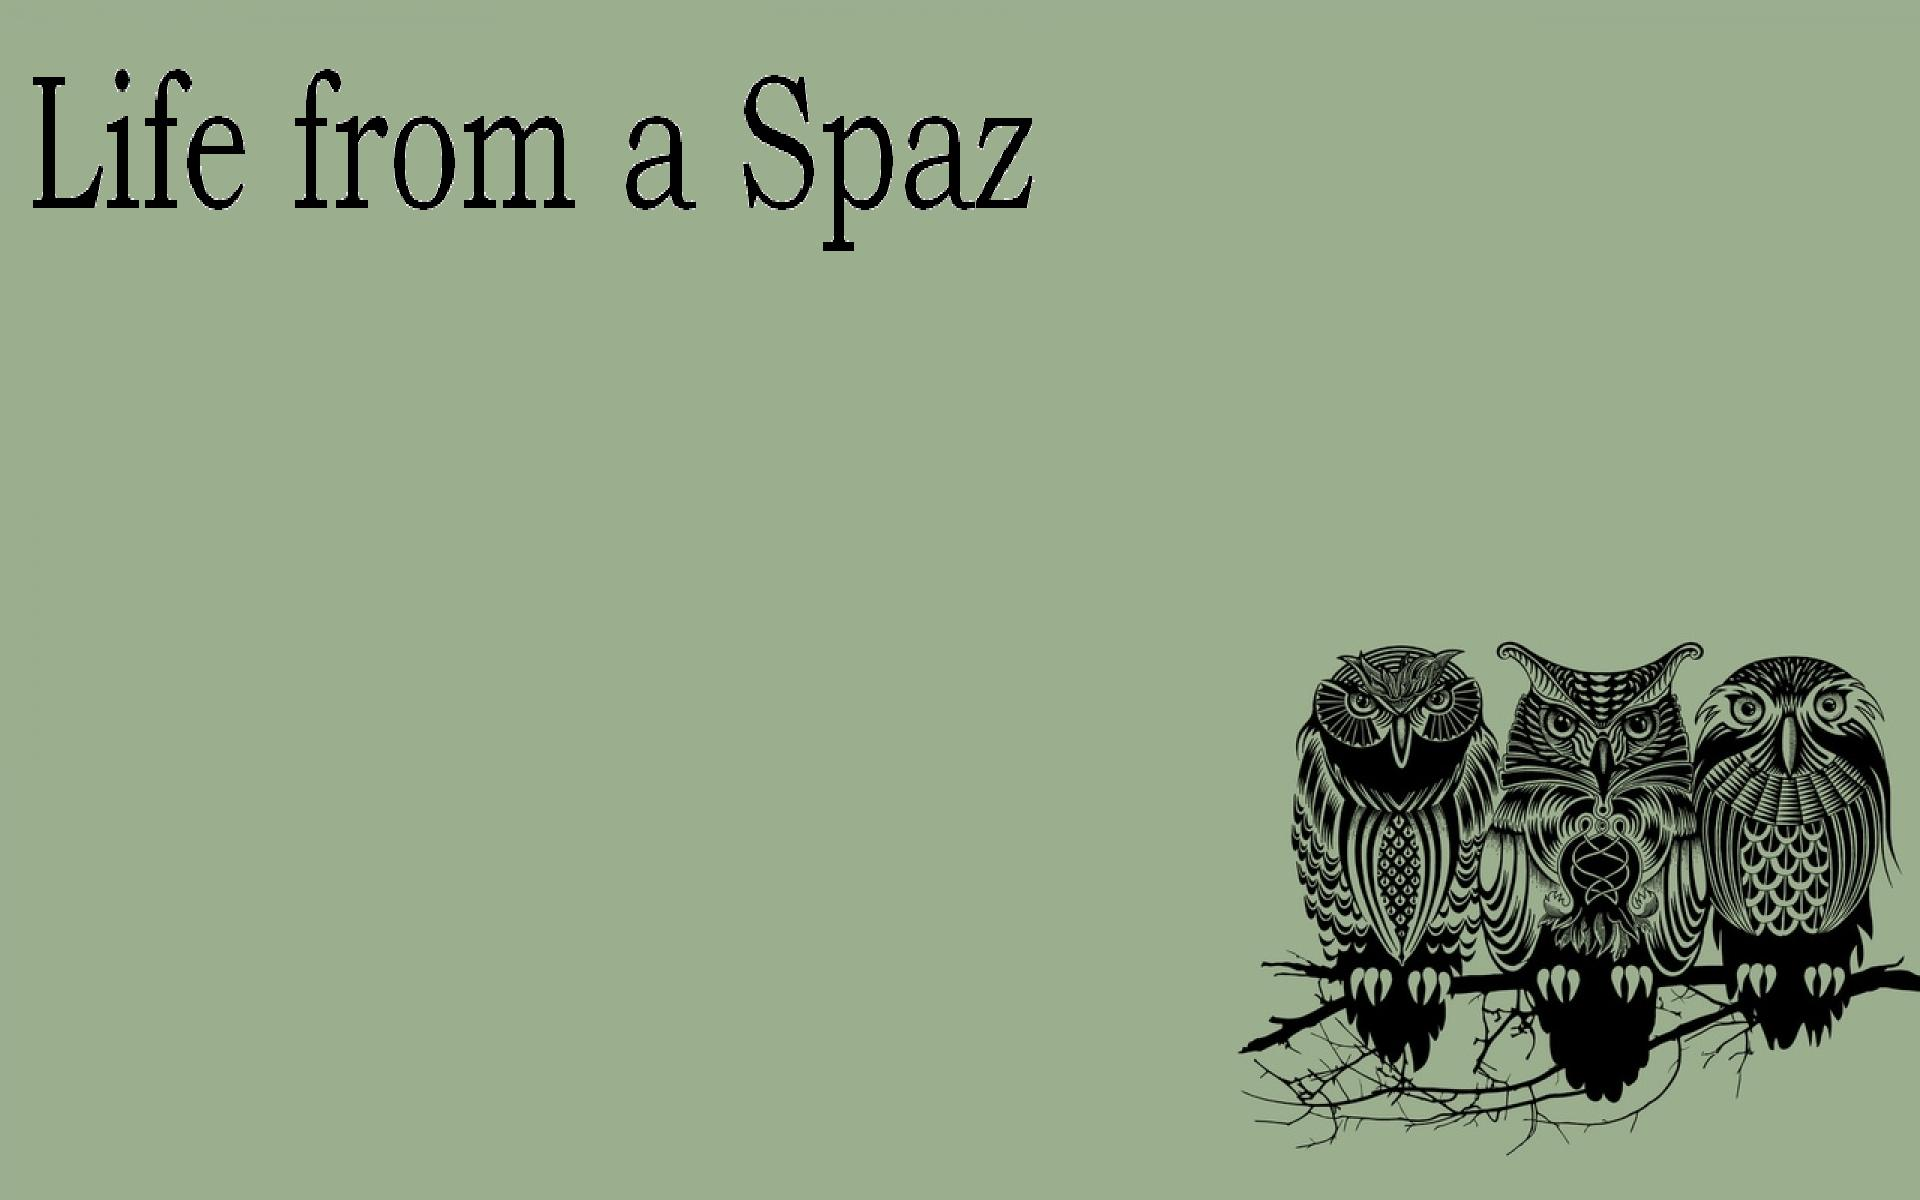 Life from a Spaz